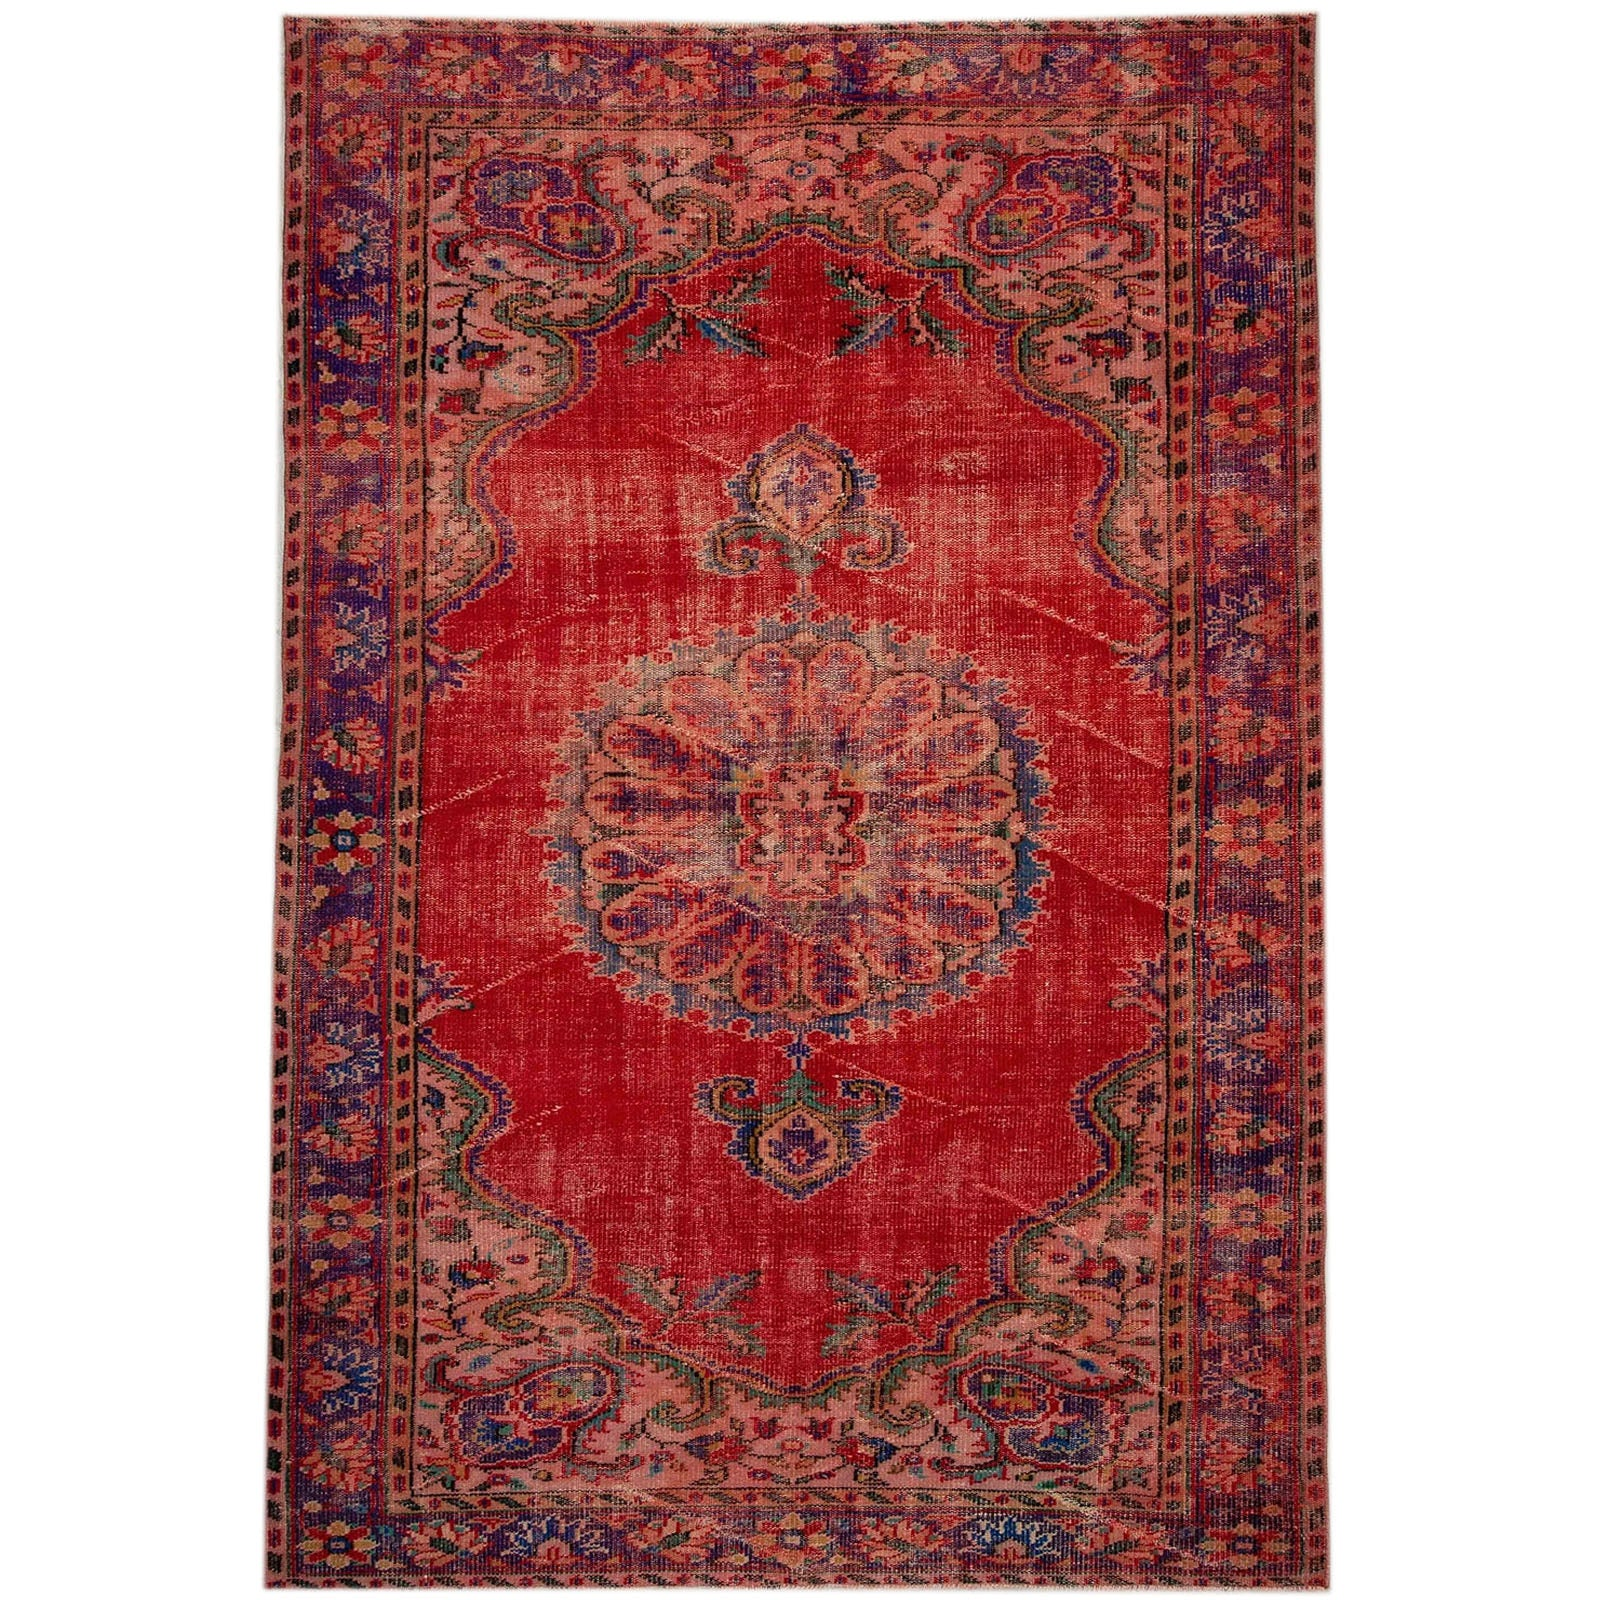 Hali 186X278  CM Bursa Handmade over dyed rug  2591 -  186*278 سجاده بورصة صناعة يدوية على بساط مصبوغ - Shop Online Furniture and Home Decor Store in Dubai, UAE at ebarza